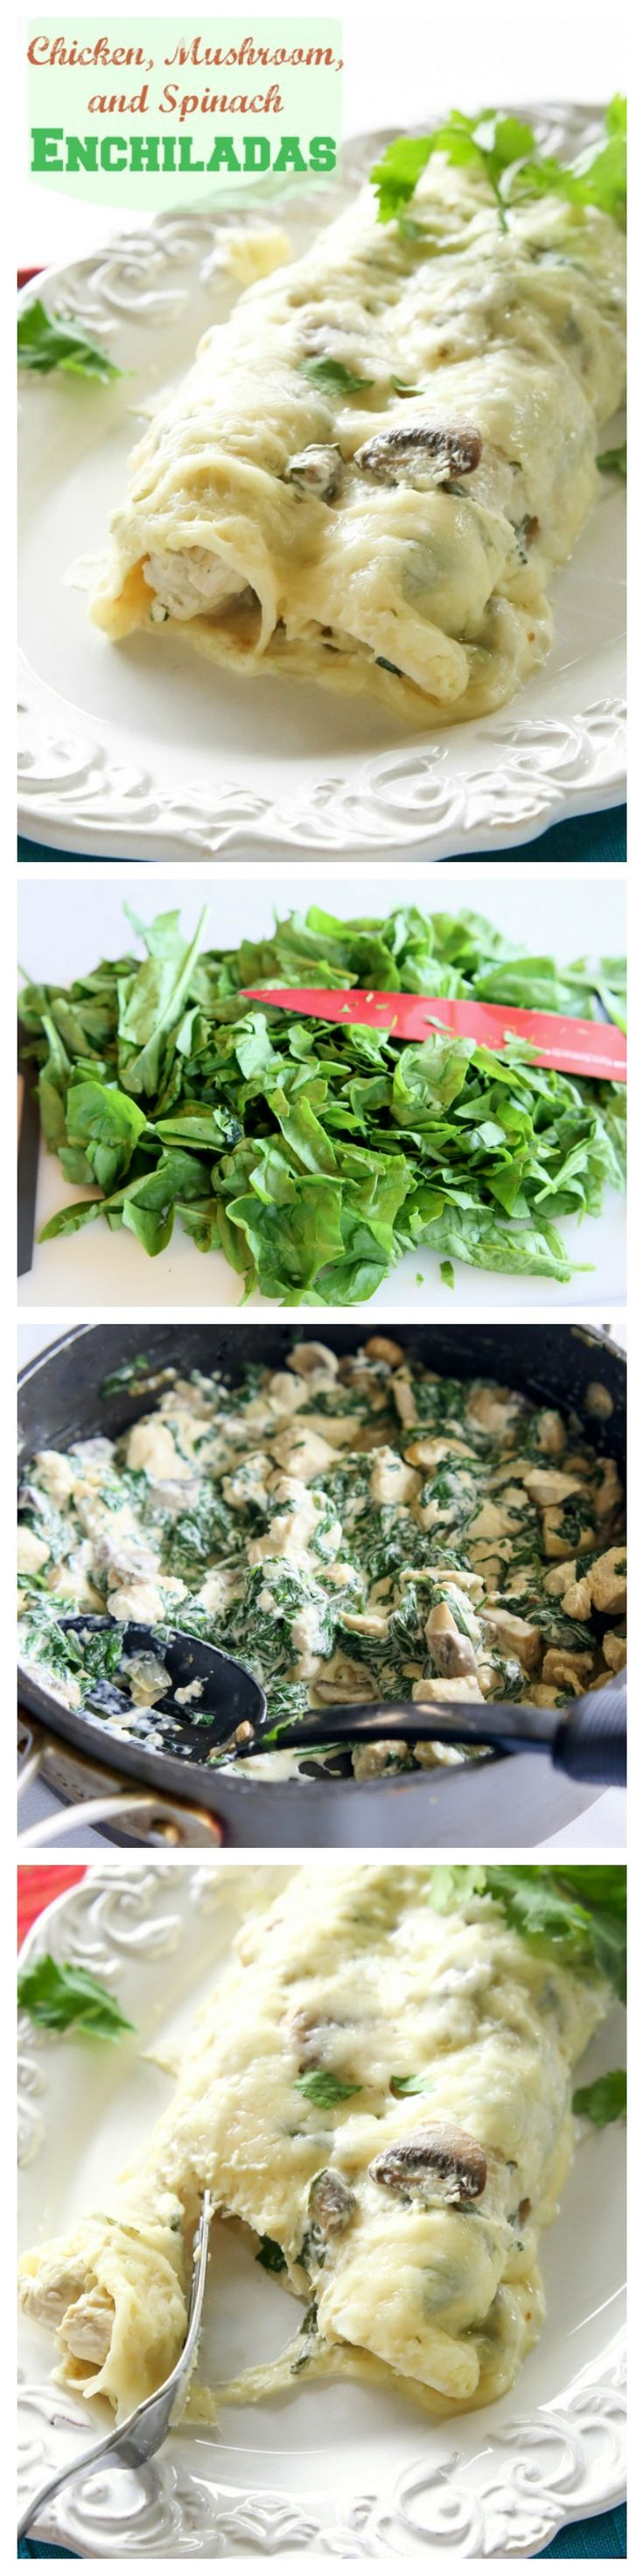 Chicken, Spinach, and Mushroom Enchiladas * Use low carb tortillas for a low carb meal.